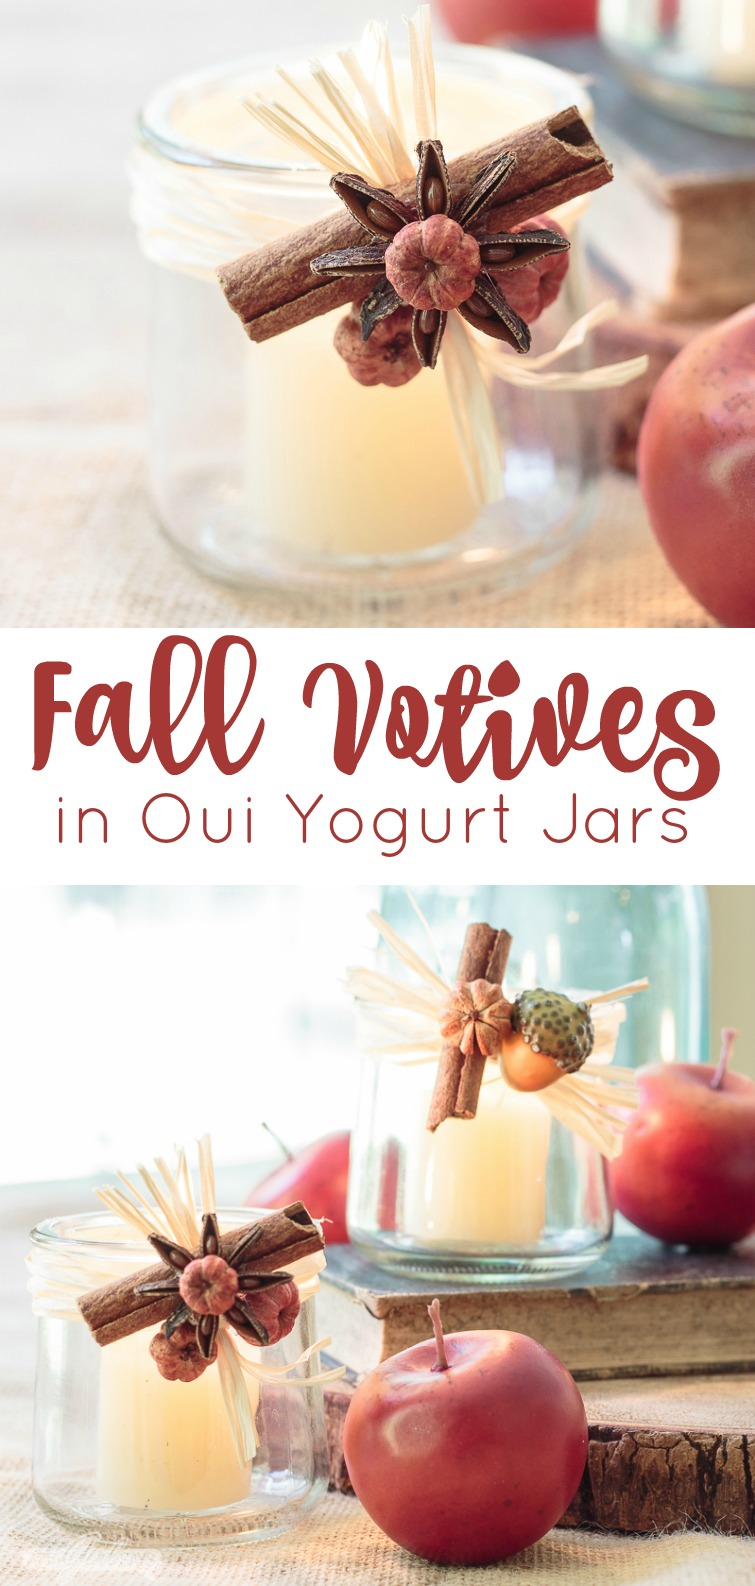 Collage photo titled Fall Votives in Oui Yogurt Jars. The top photo shows a tealight candle holder decorated with cinnamon sticks, anise star and seed pods with a stack of old books and small red apples in the background. The bottom photo shows tealight candle holder decorated with cinnamon sticks, anise star and seed pods with a stack of old books and small red apples in the background